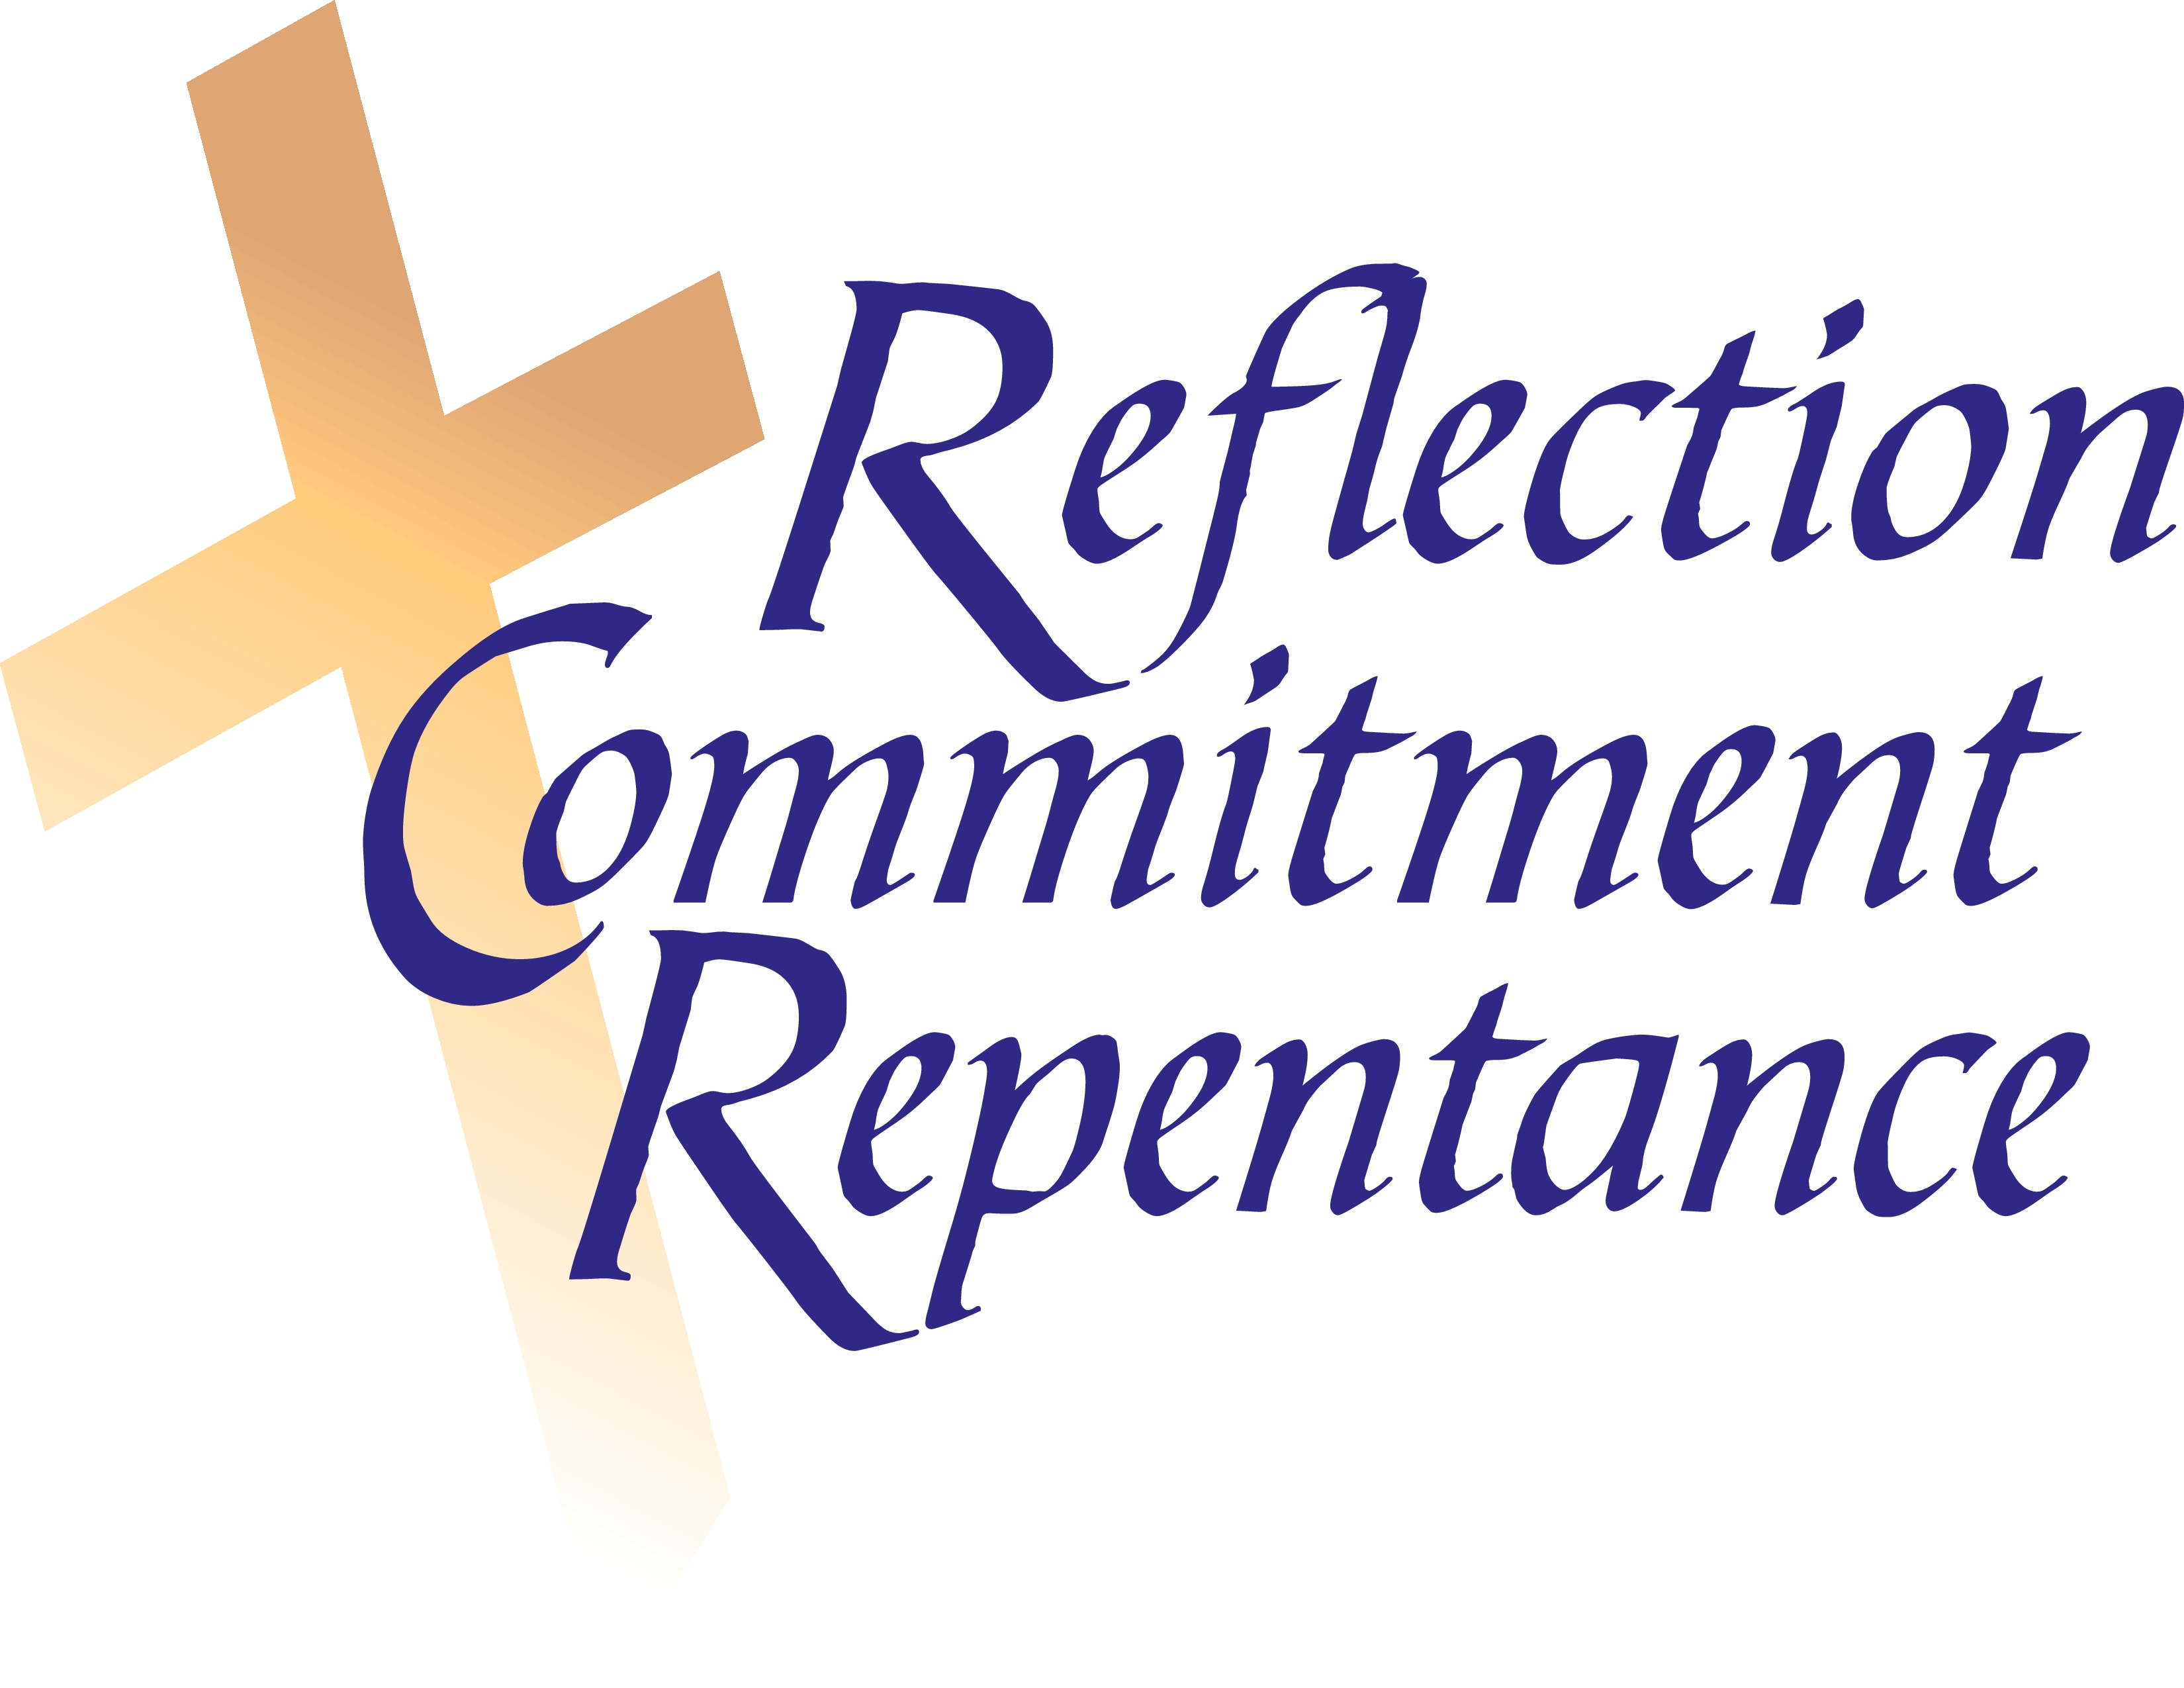 reflection-with-commitment-and-repentance